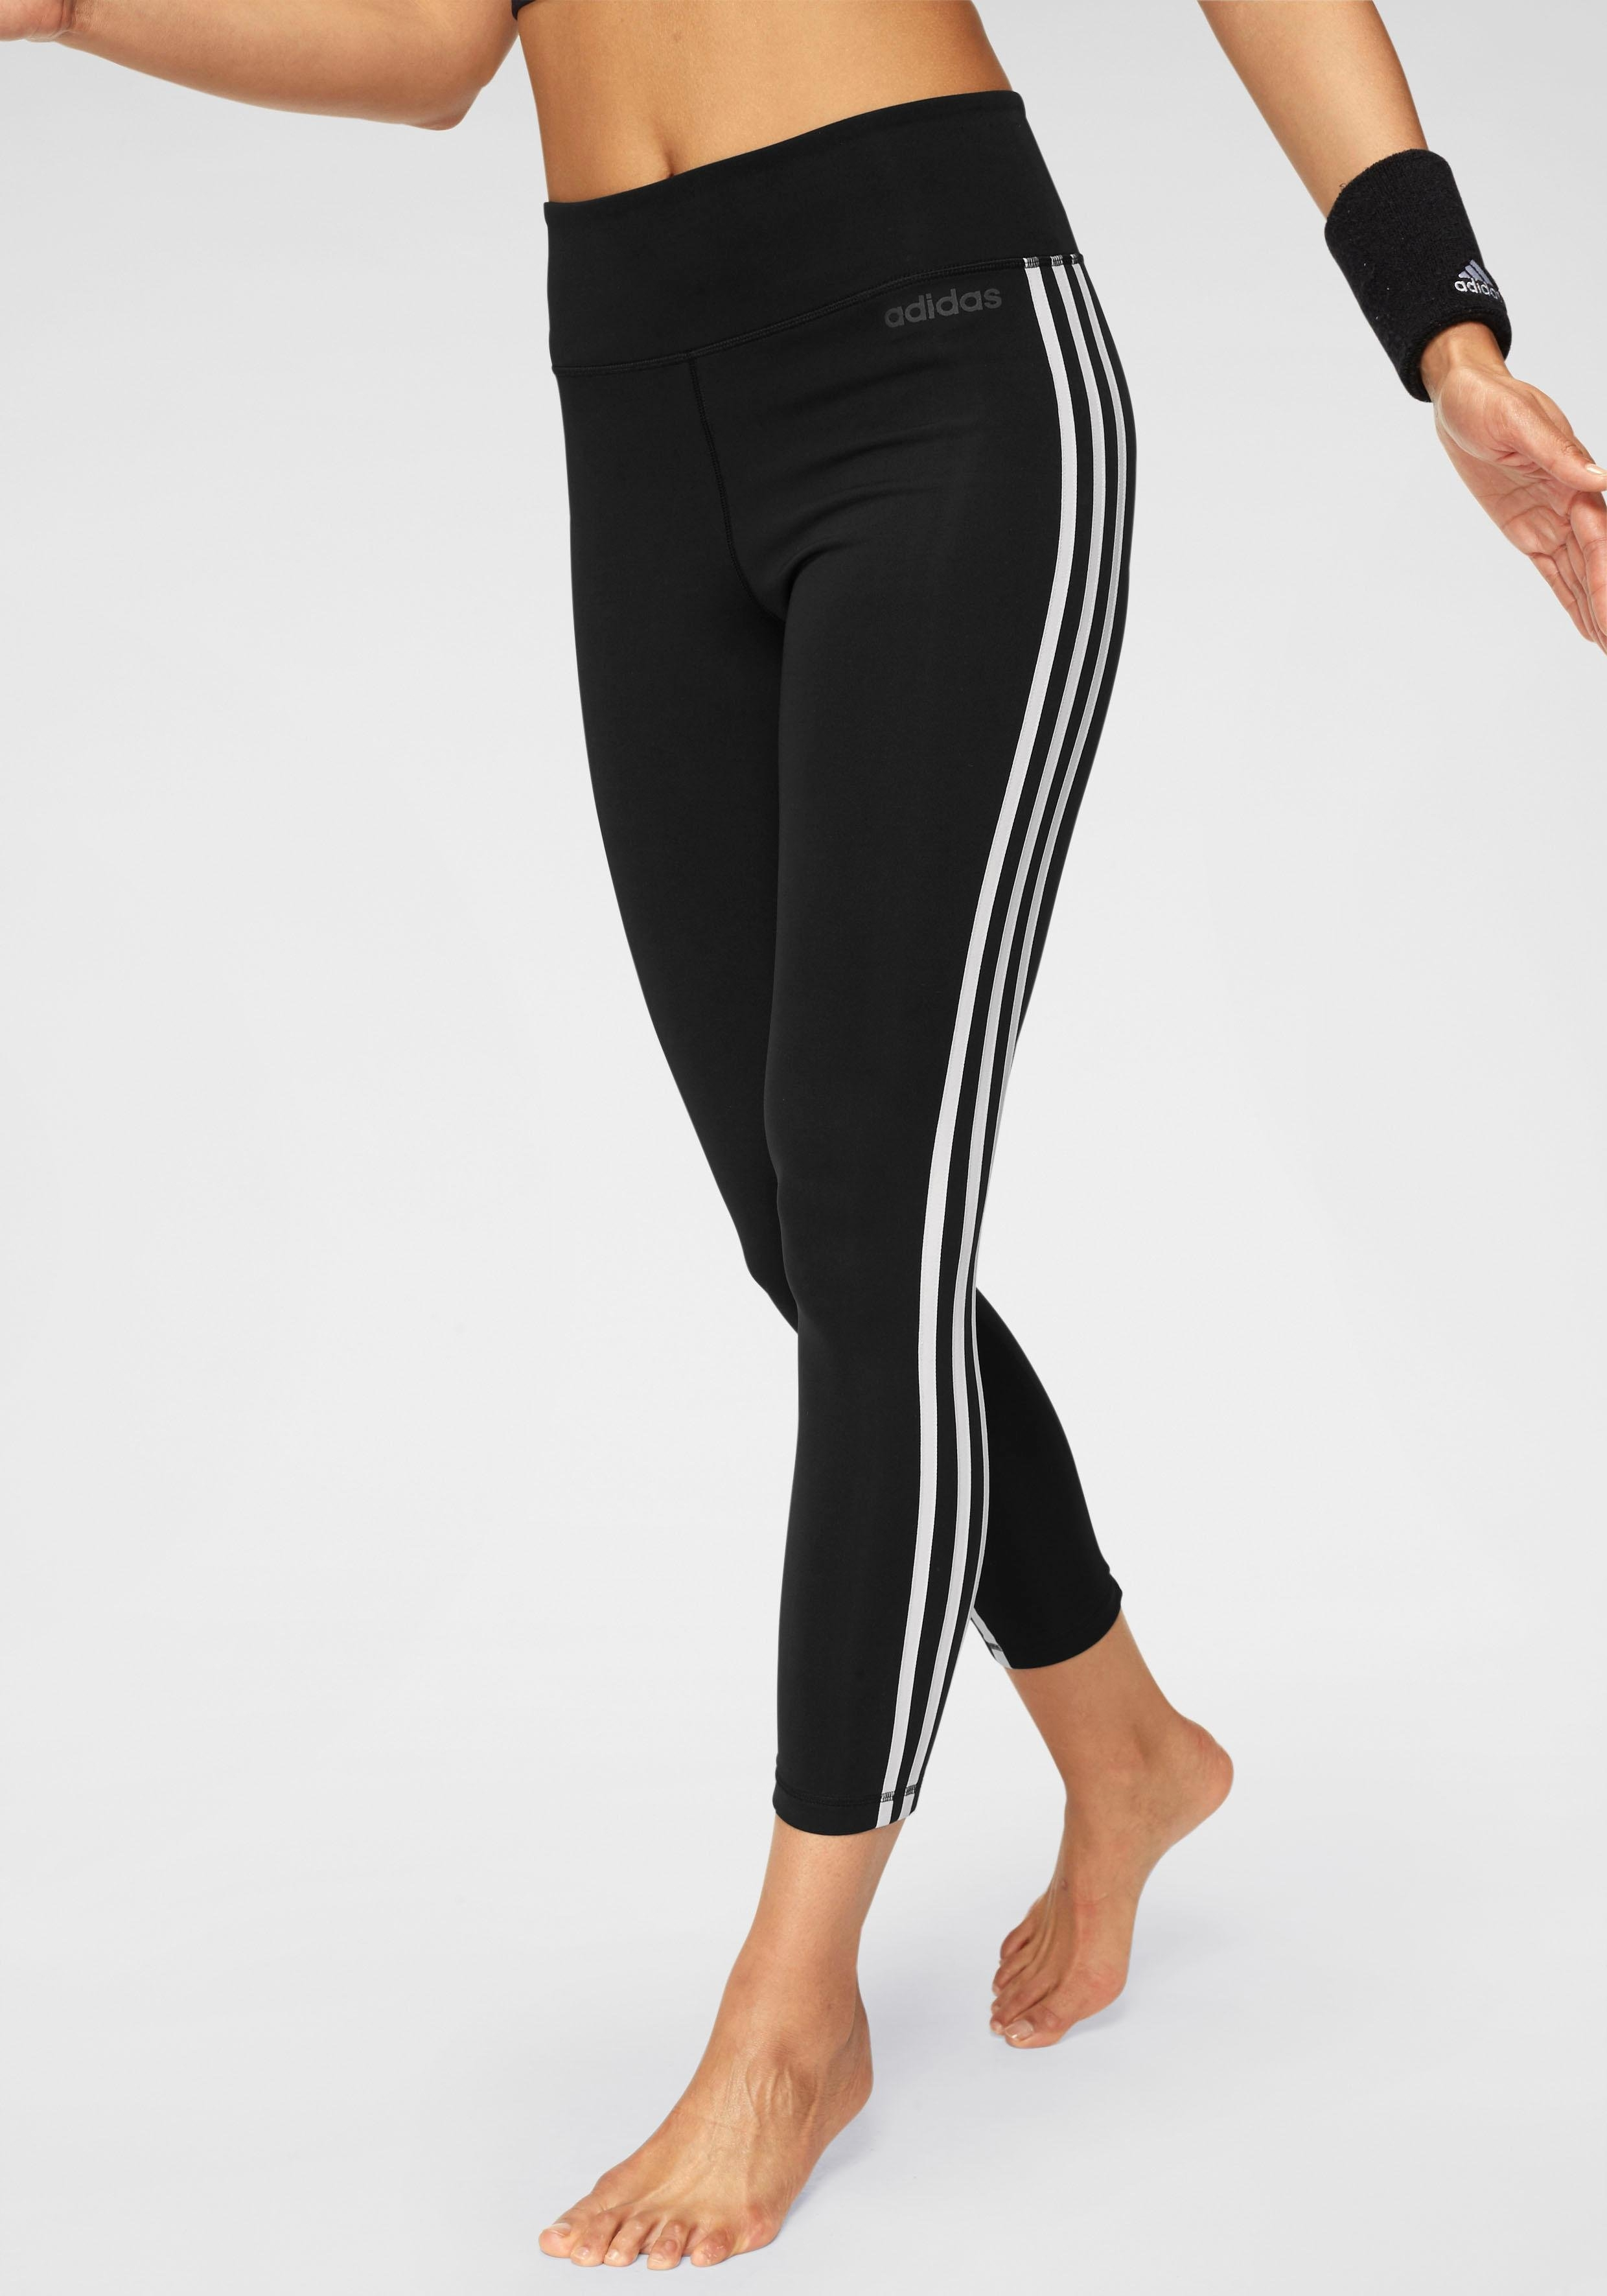 c89c4c7a817 ... H.I.S jazzpants, active by LASCANA performance-legging met een brede  band, H.I.S Functionele broek in 3/4-lengte, adidas runningtights »DESIGNED  ...